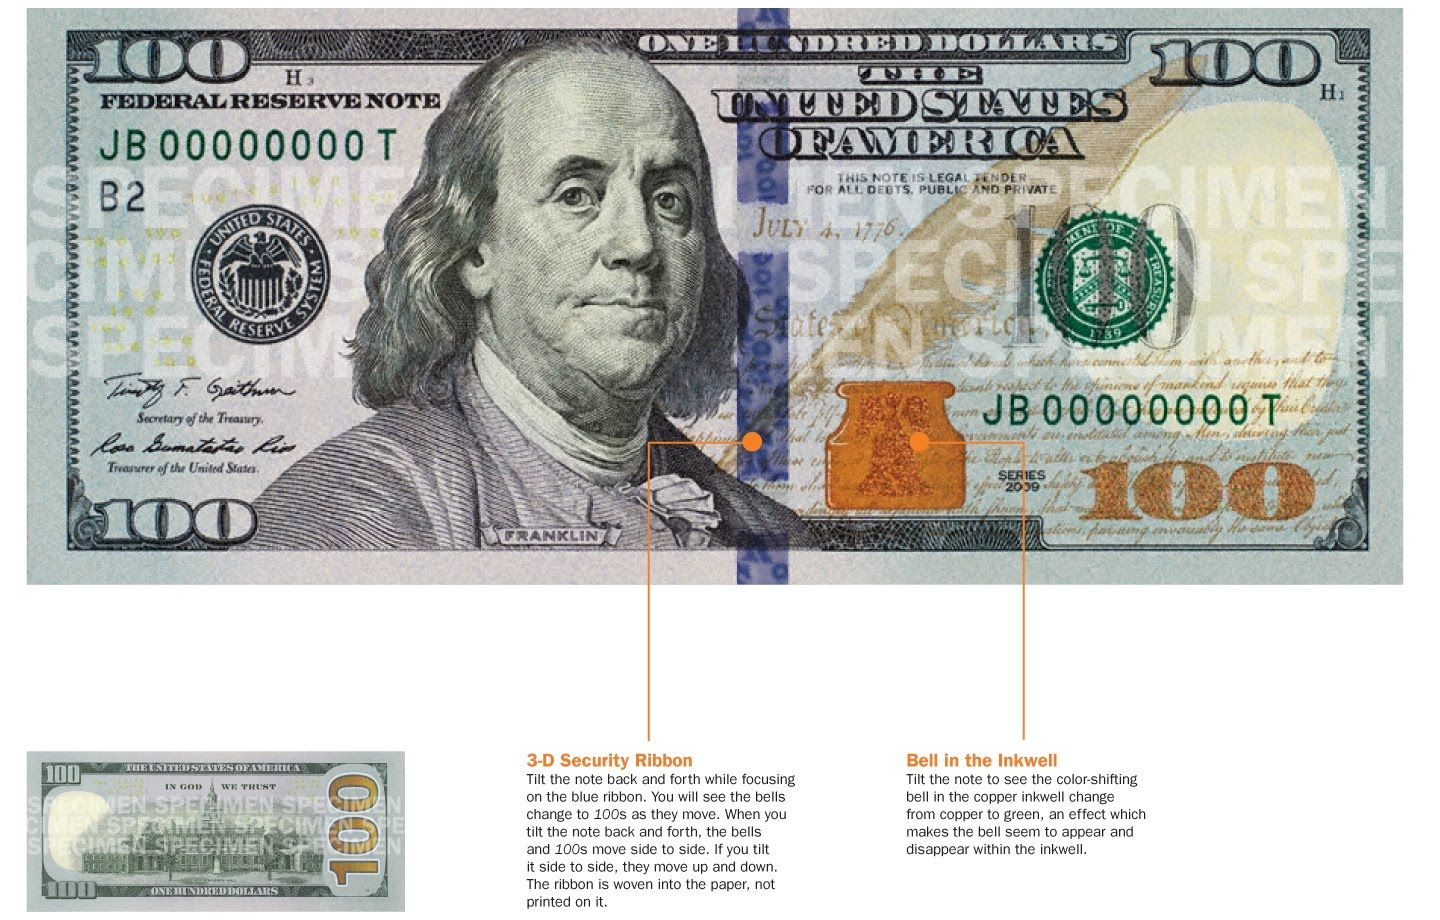 world currency notes pictures | How To Detect Counterfeit $100 Notes ...